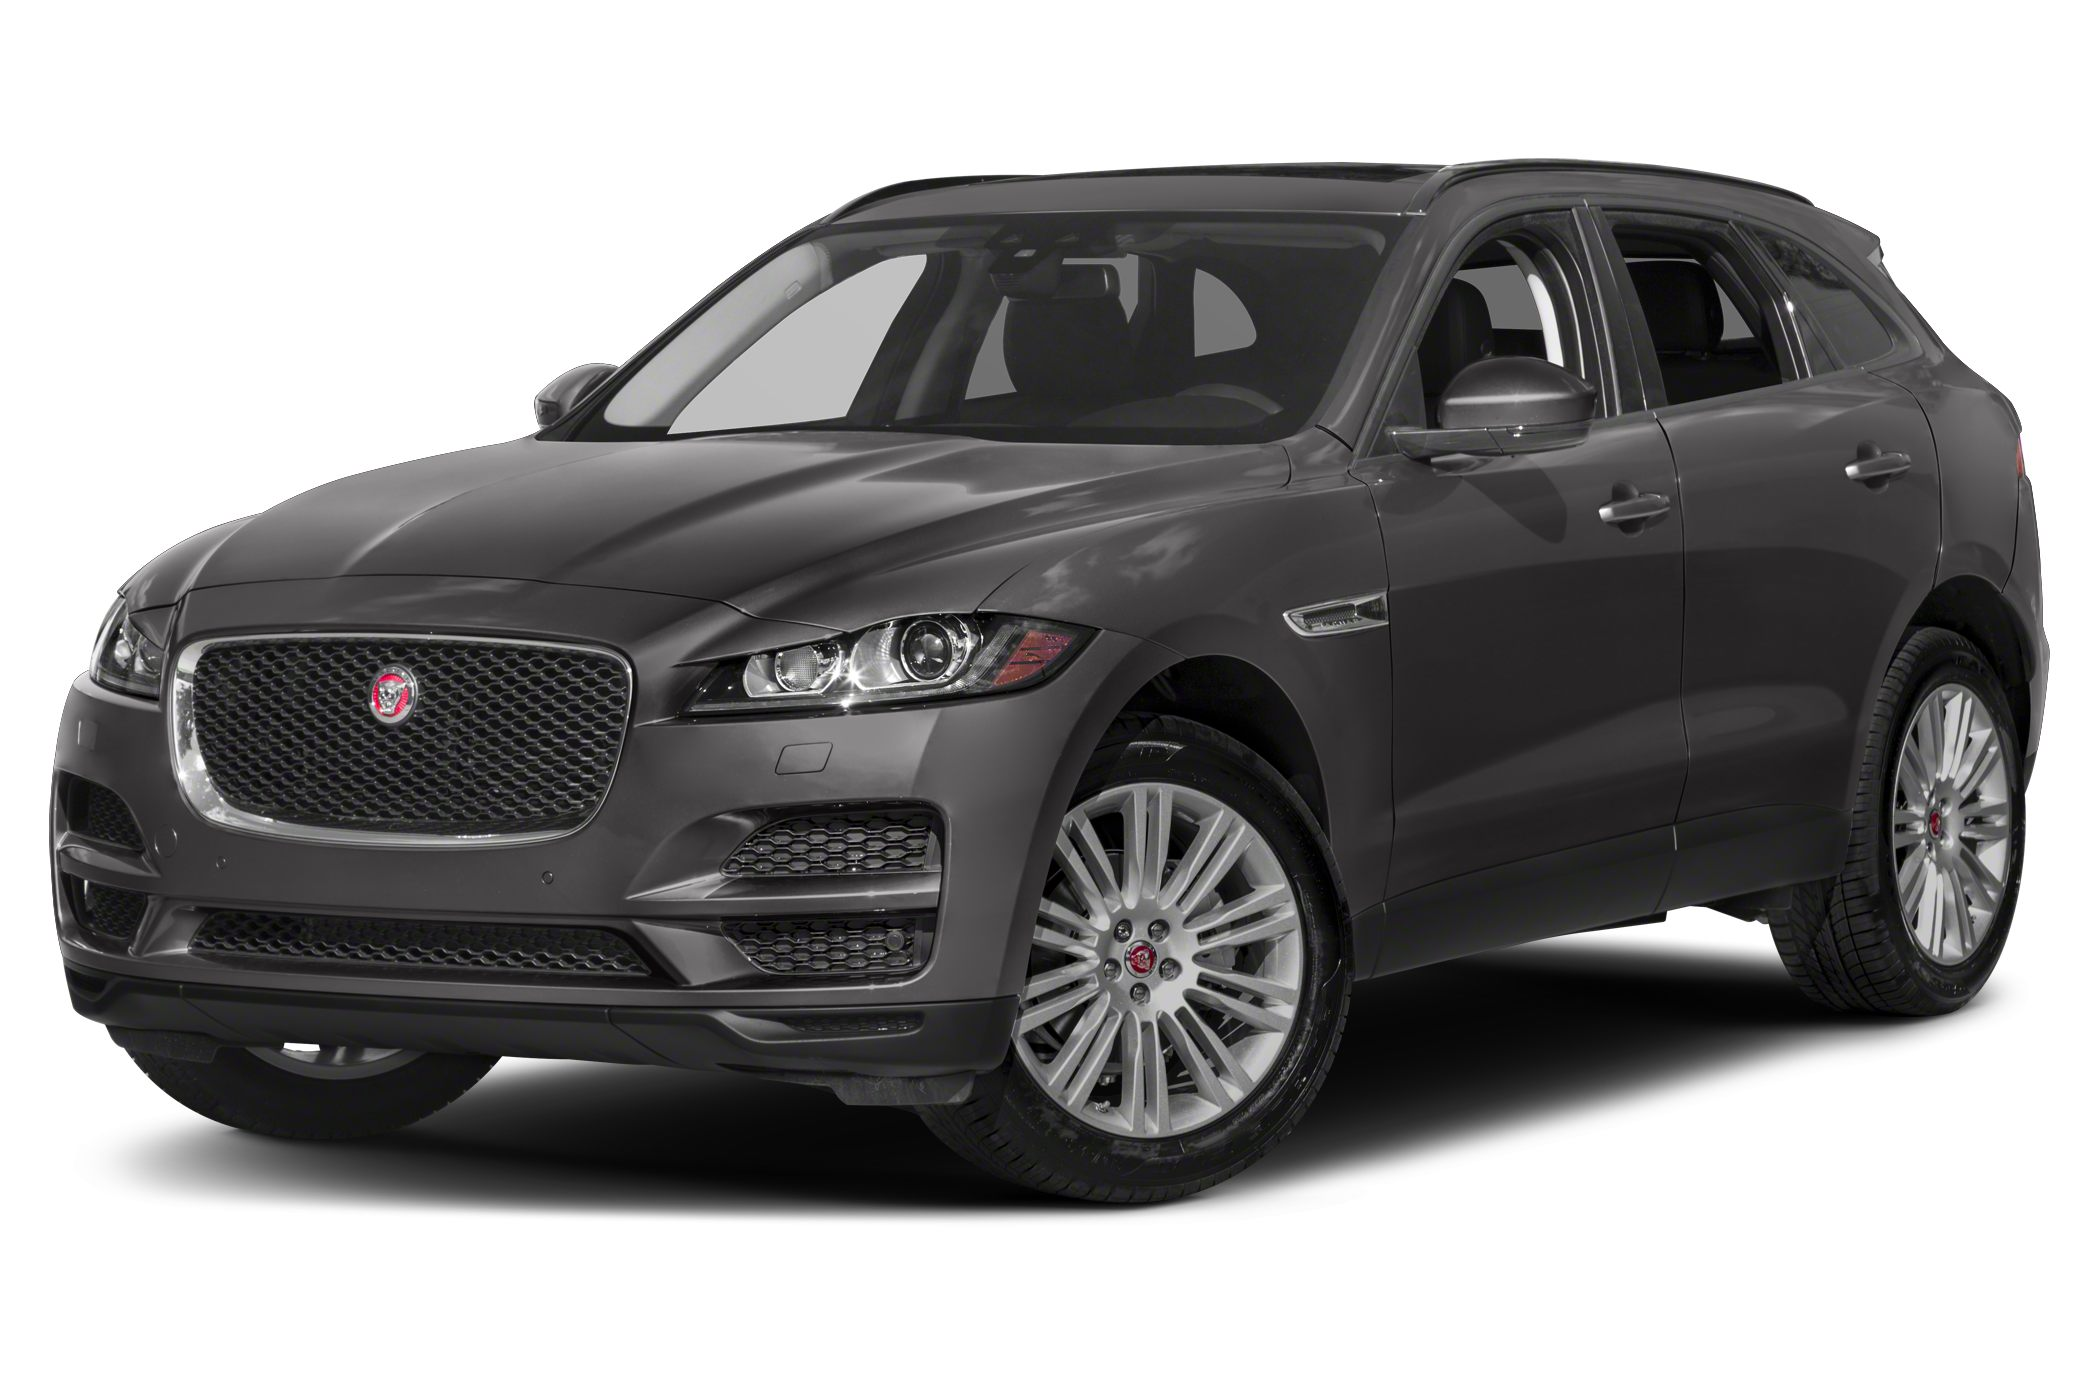 2017 Jaguar F Pace 20D Premium >> 2017 Jaguar F Pace 20d Premium All Wheel Drive Pictures